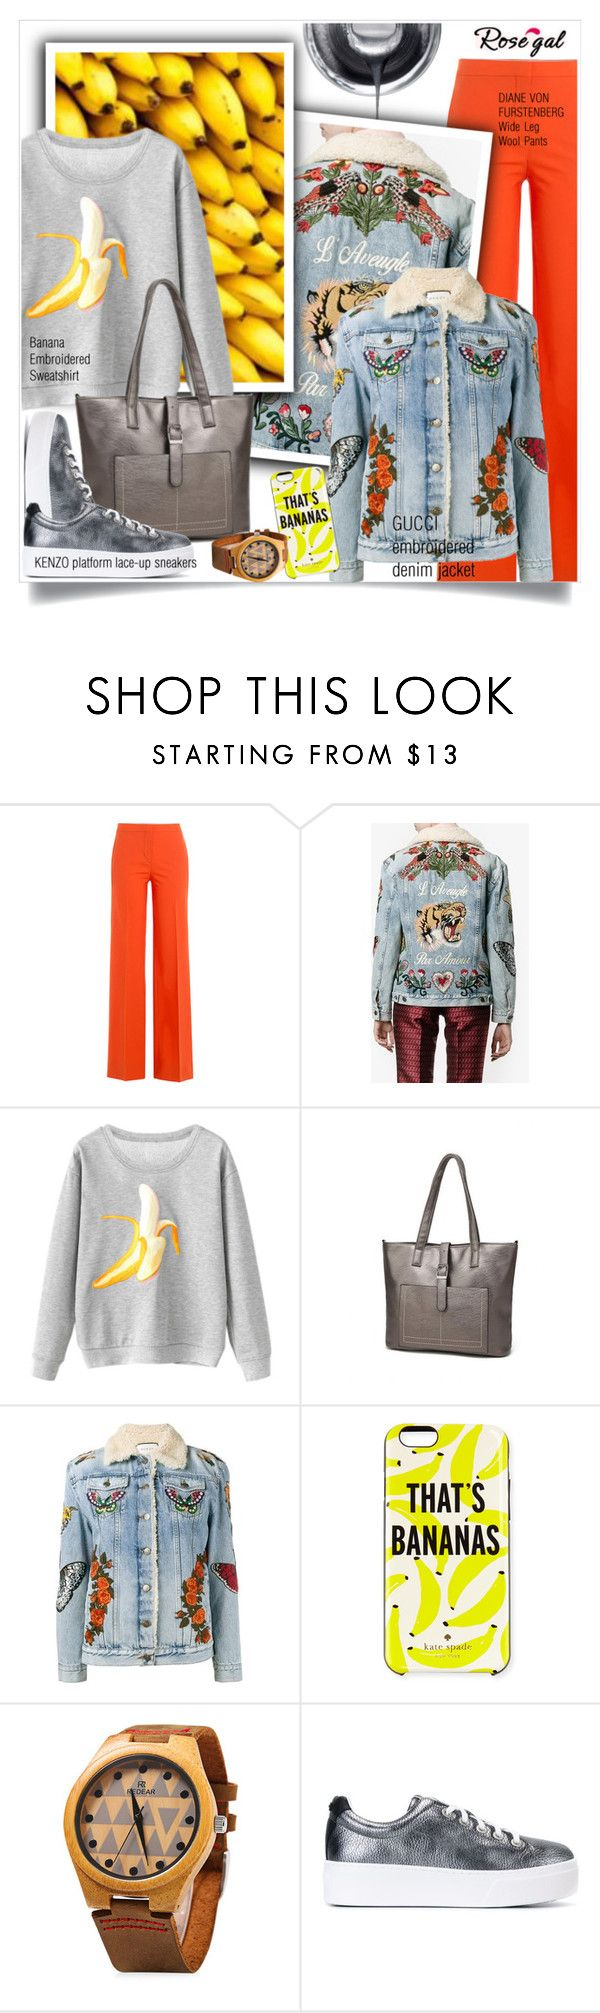 """""""Winter Fashion"""" by sweetsely ❤ liked on Polyvore featuring Diane Von Furstenberg, Gucci, Kate Spade, Kenzo, platformsneakers and polyvoreeditorial"""